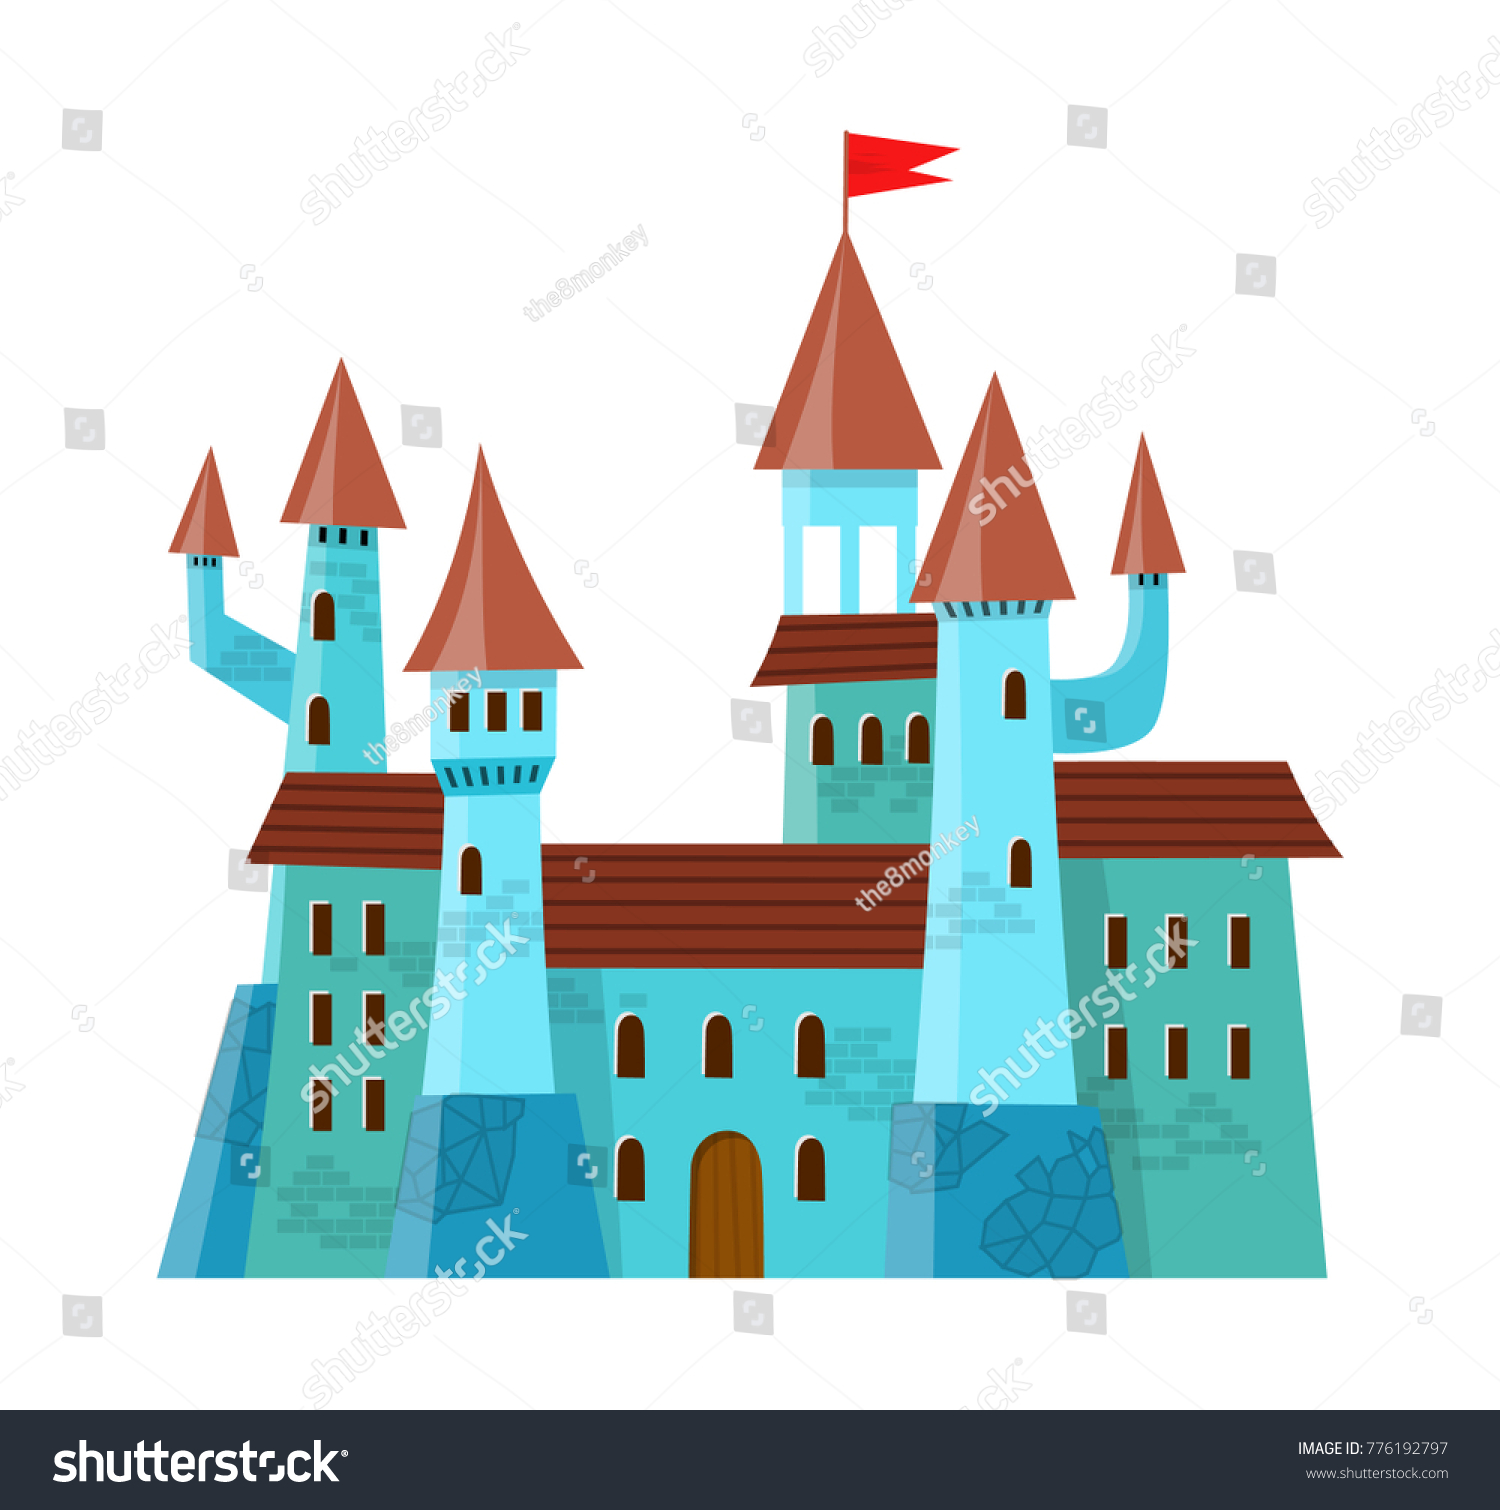 Fairy me val castle in cartoon style on white background is